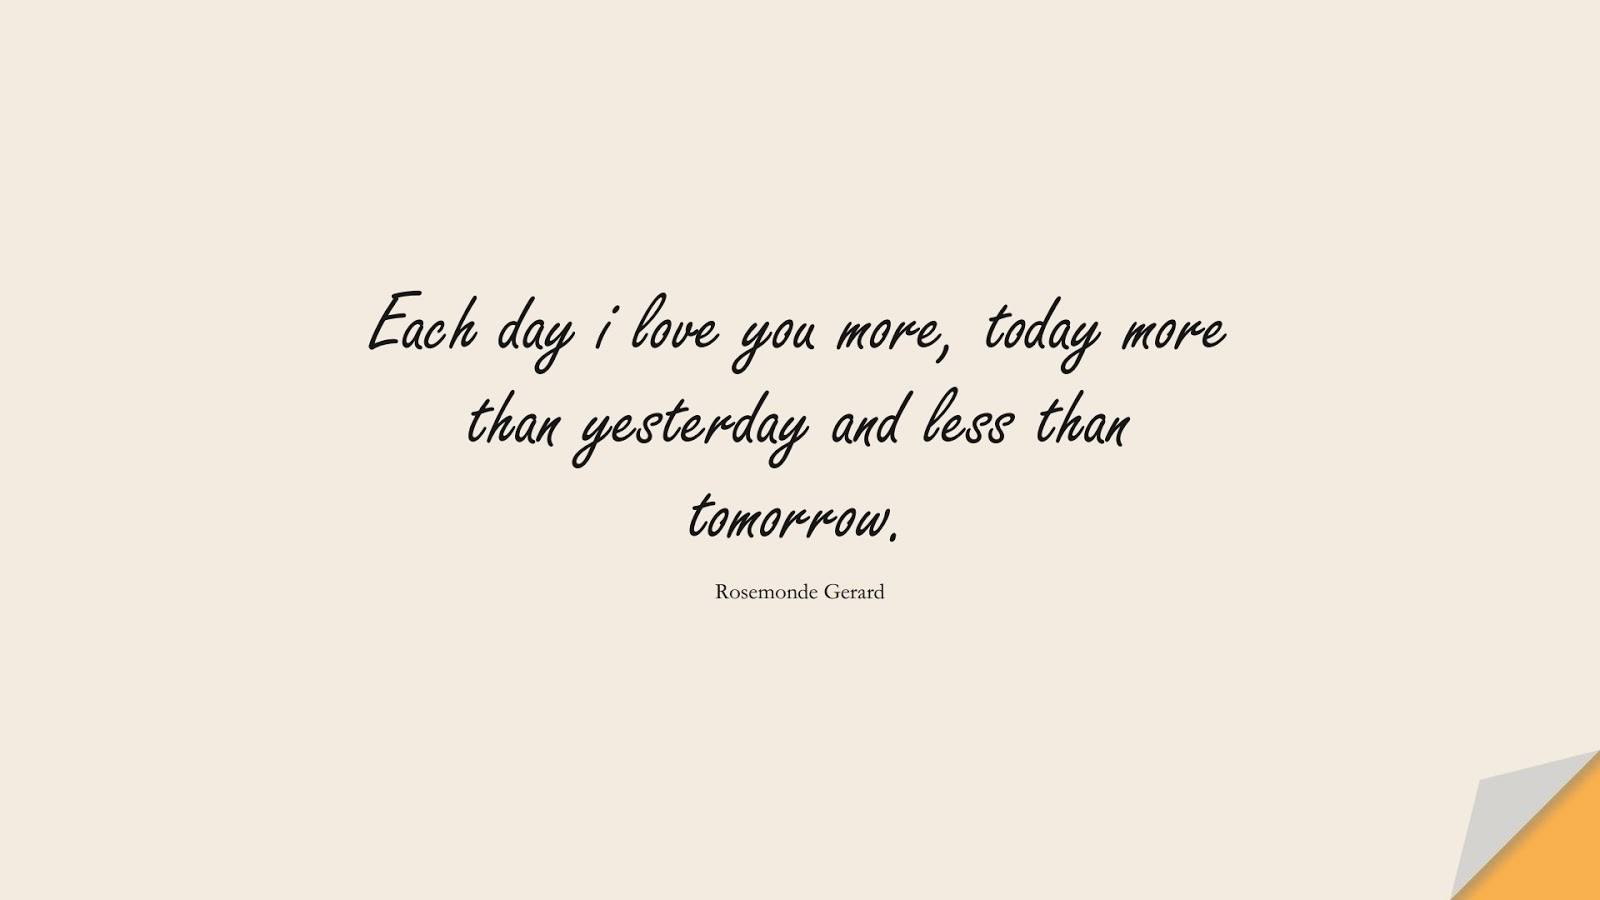 Each day i love you more, today more than yesterday and less than tomorrow. (Rosemonde Gerard);  #LoveQuotes